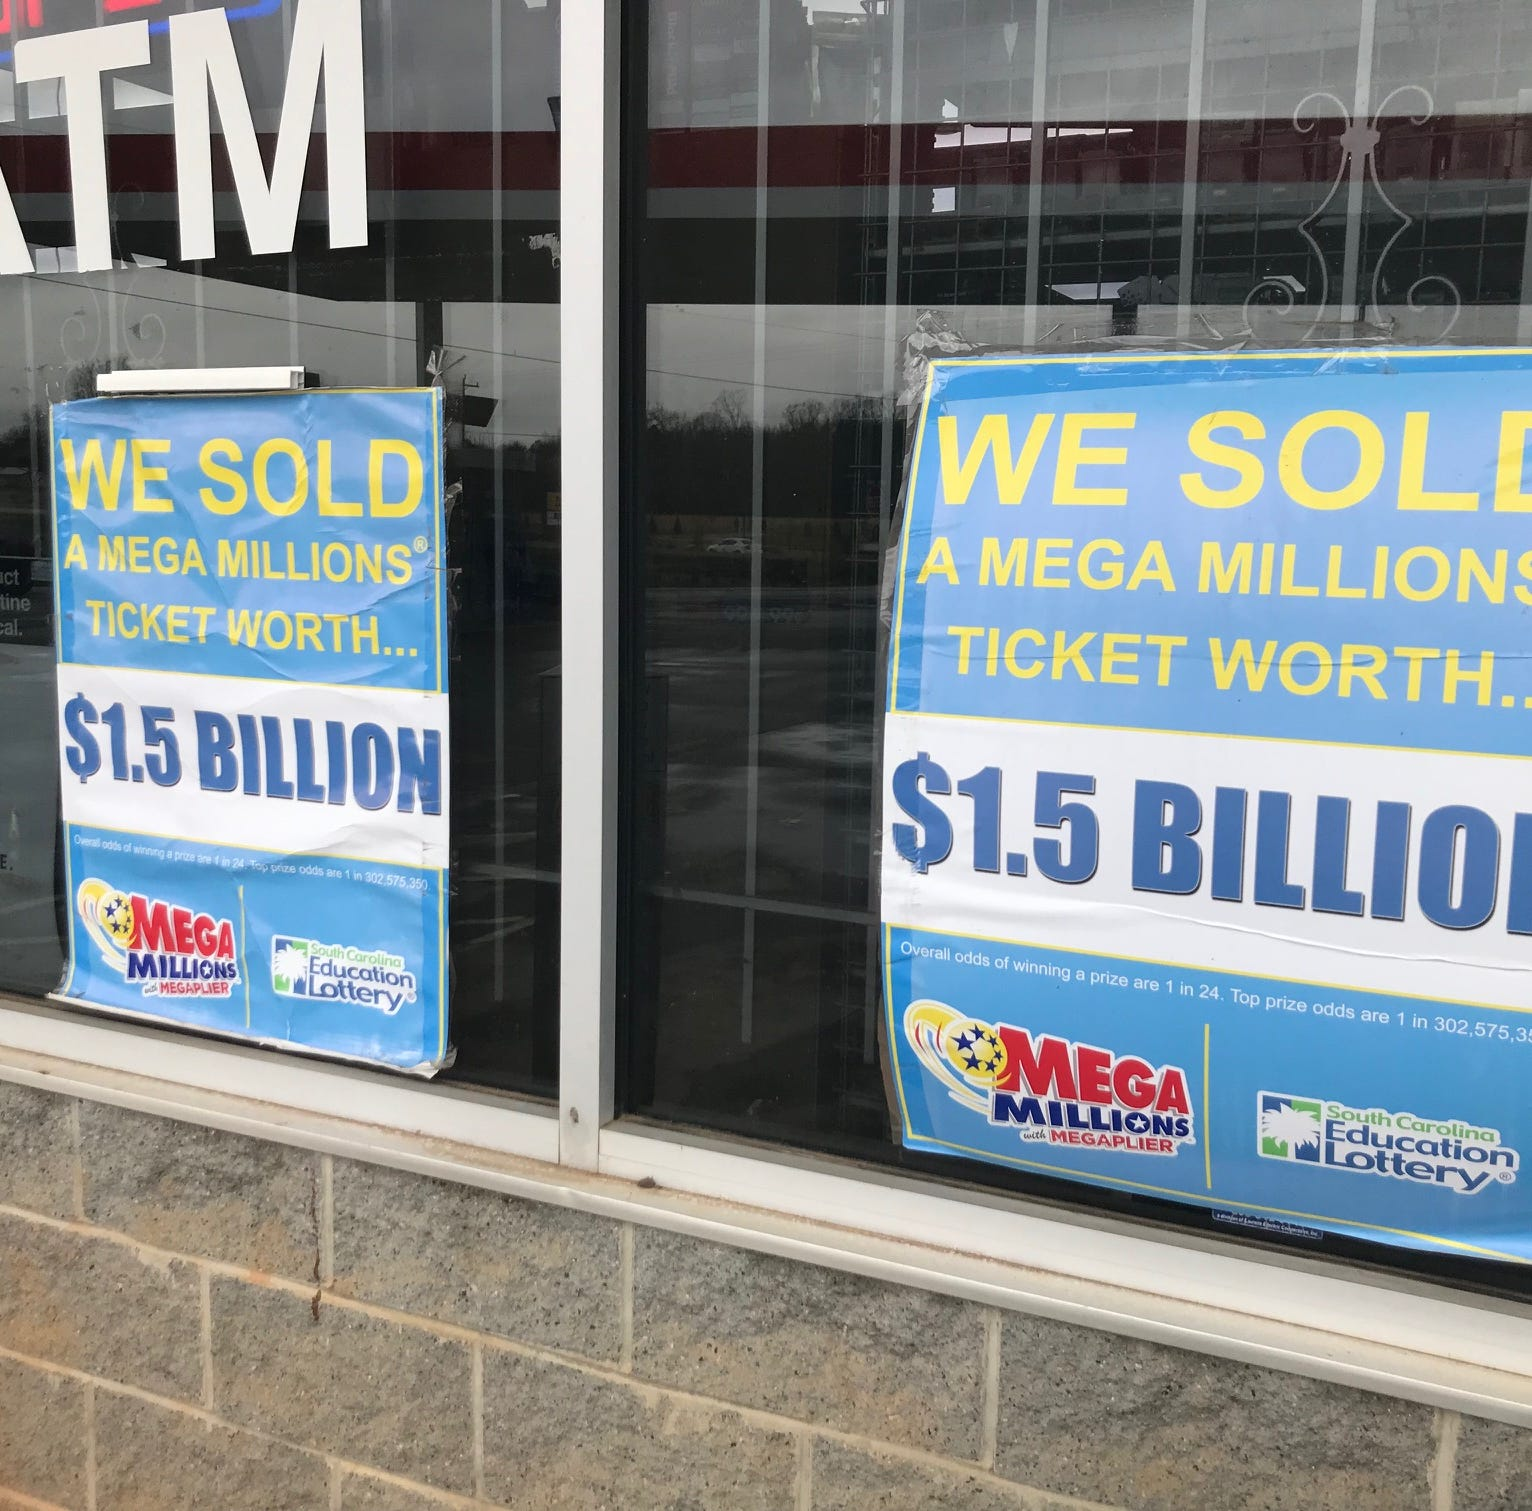 4 months later, mystery and rumors surround Mega Millions unclaimed $1.5 billion jackpot